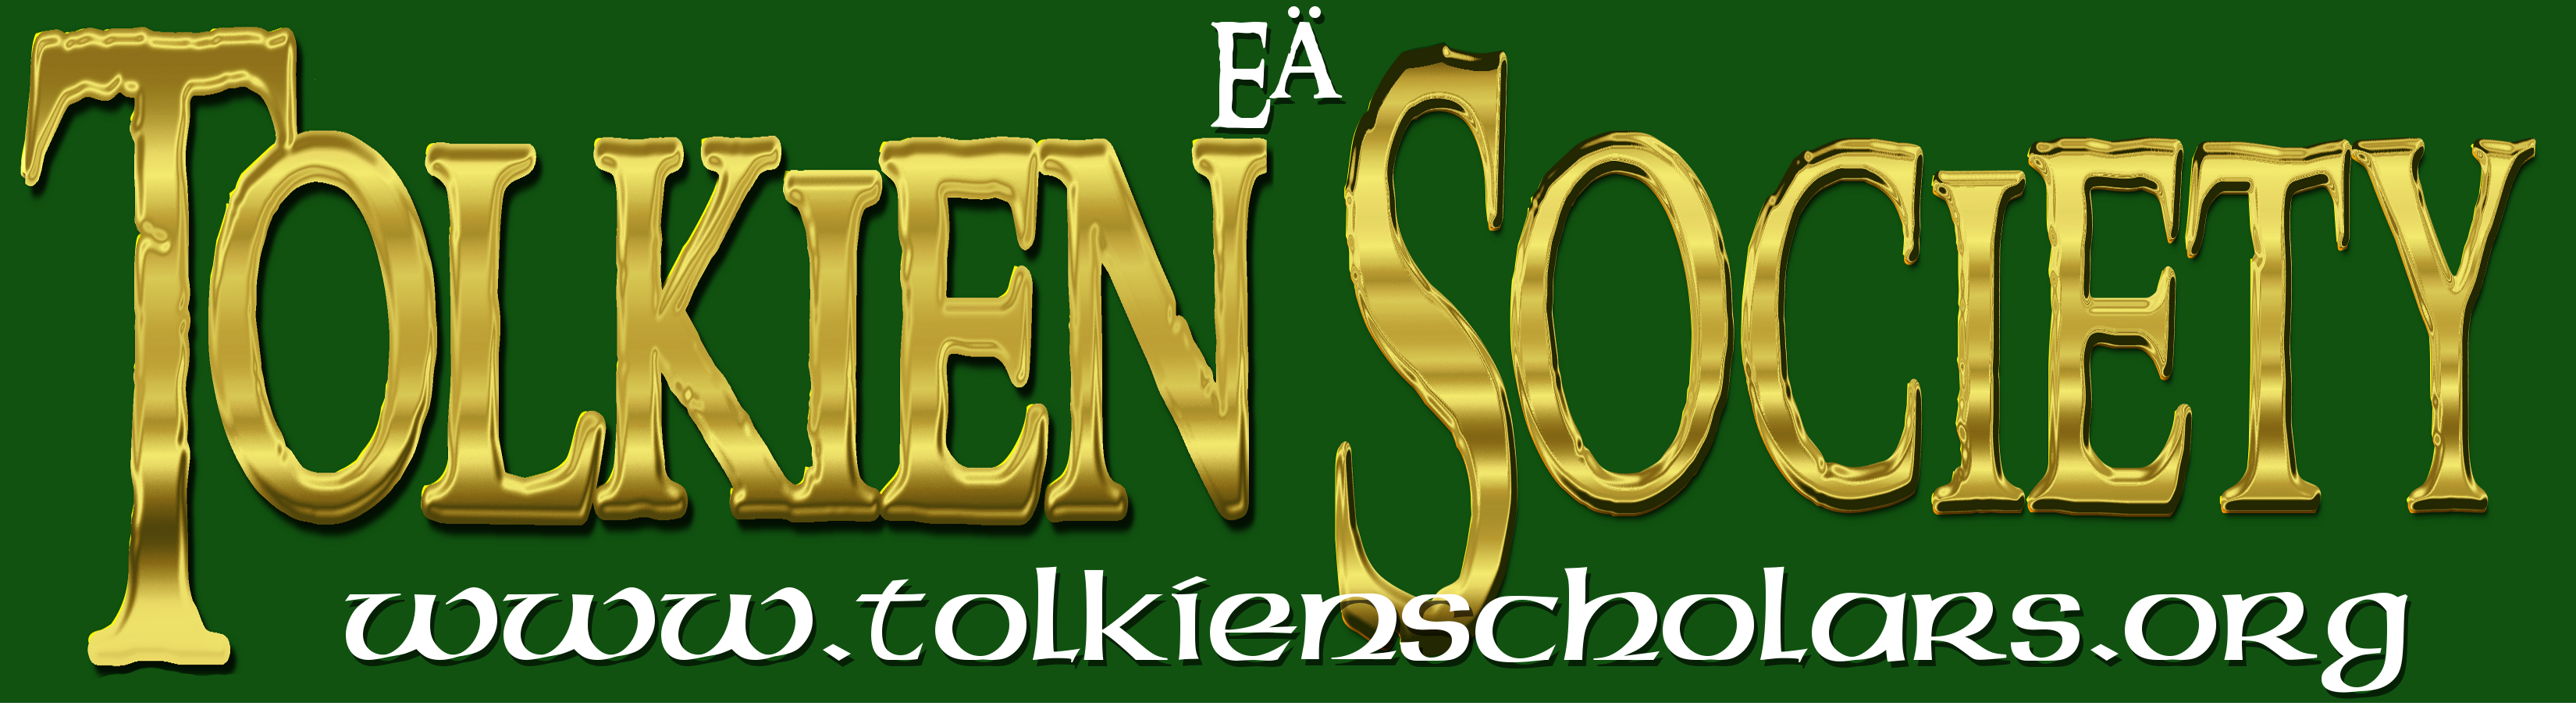 Reminder: Eä Tolkien Society Meeting & Broadcast December 19th, 2020 1-3 pm Pacific Time